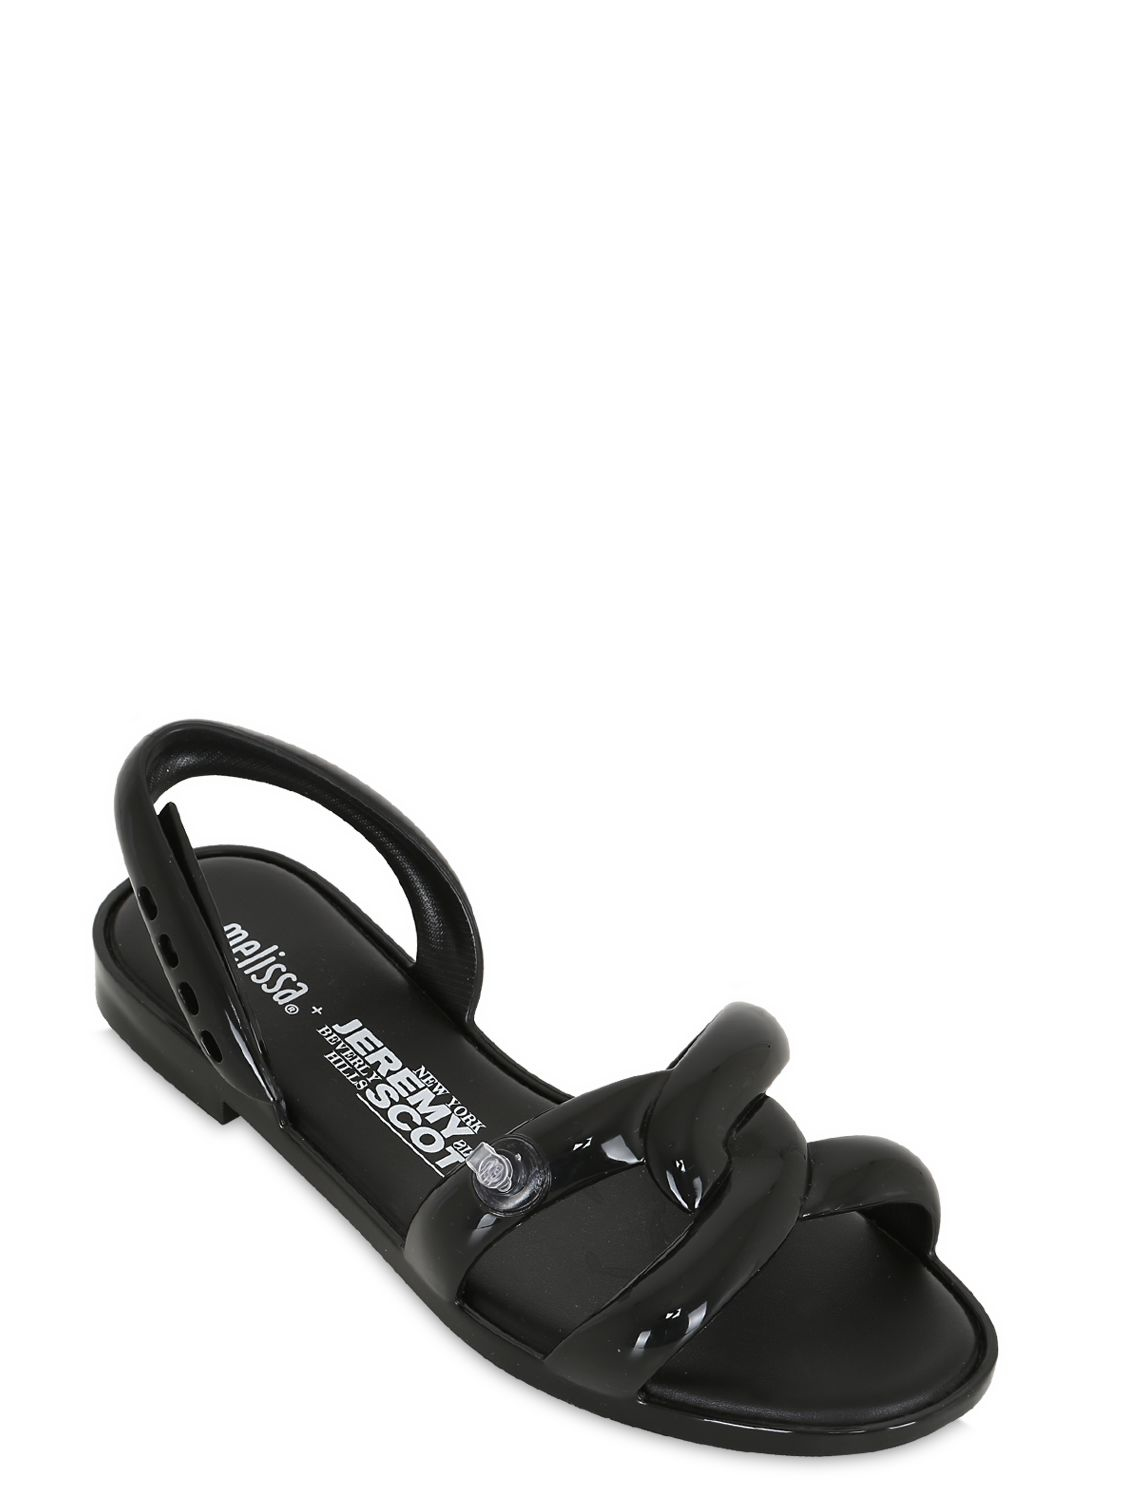 Melissa 10mm Inflatable Rubber Sandals in Black | Lyst